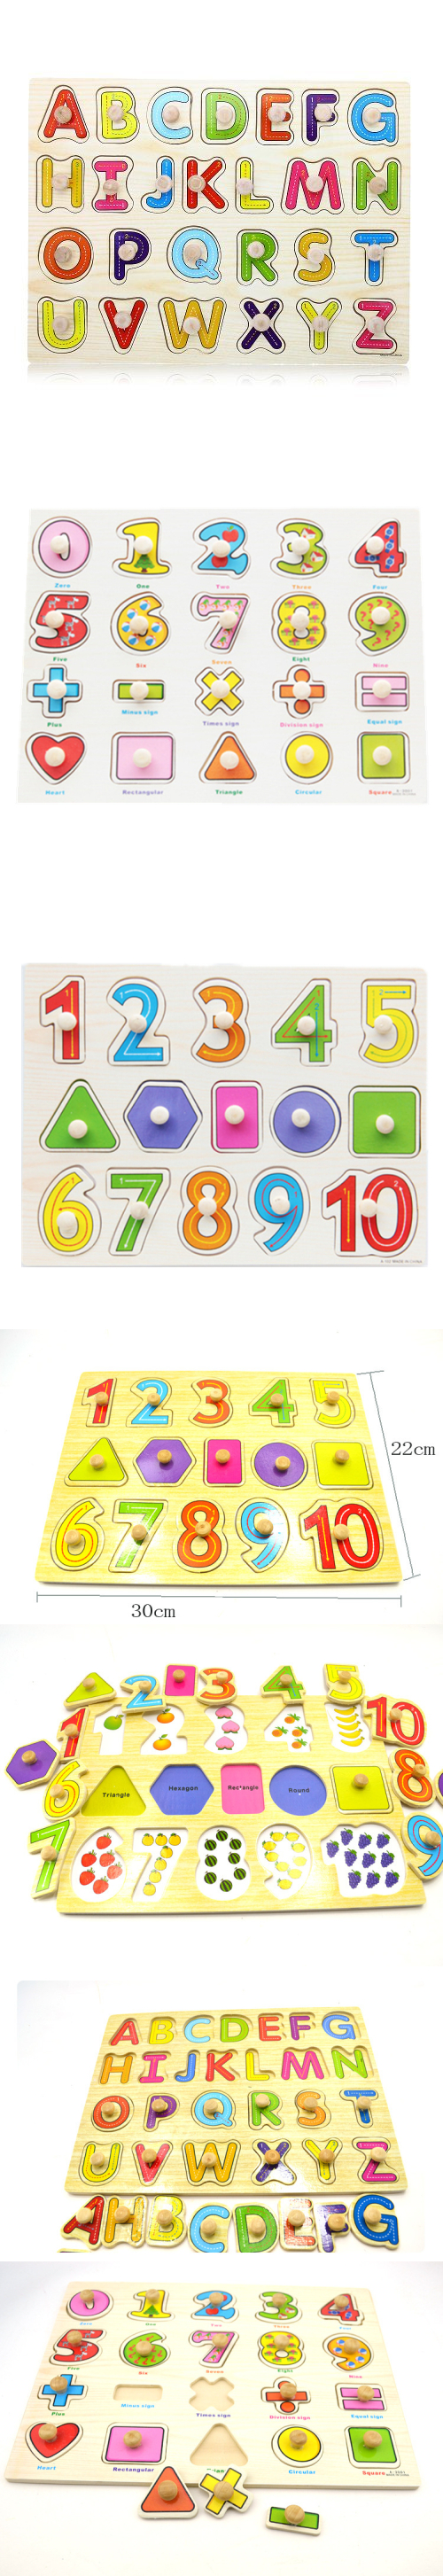 Little B House 1 Set 3 pcs Preschool Educational Wood Puzzle - Alphabet & Mathematics -BKM38-A